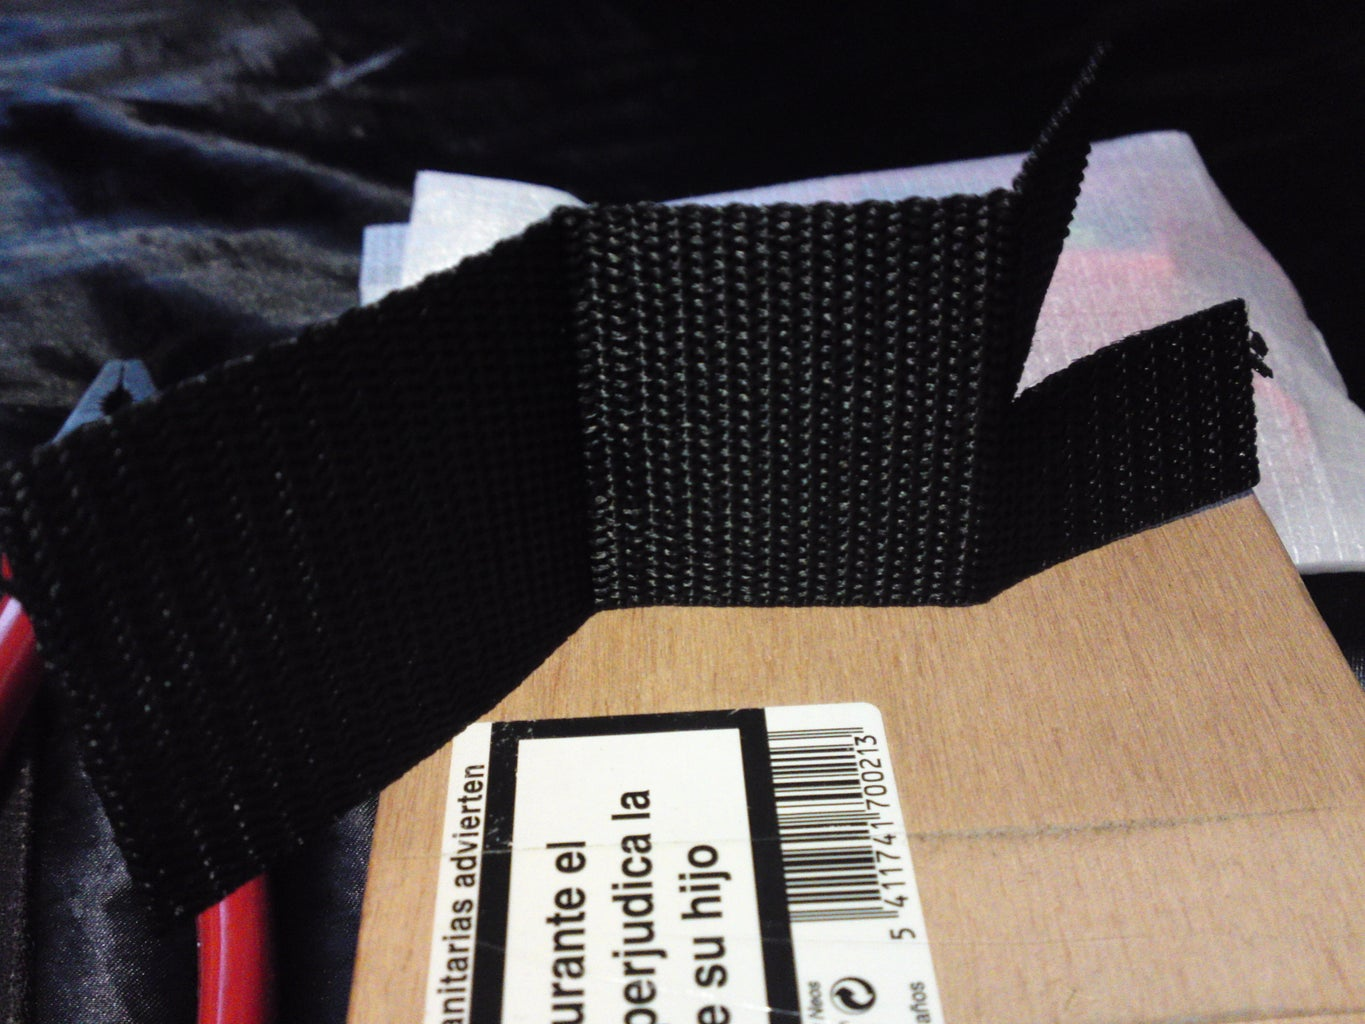 Now the Final Part - Tophalves of the Weight Bearing Webbing Section & Lower 'Loops'